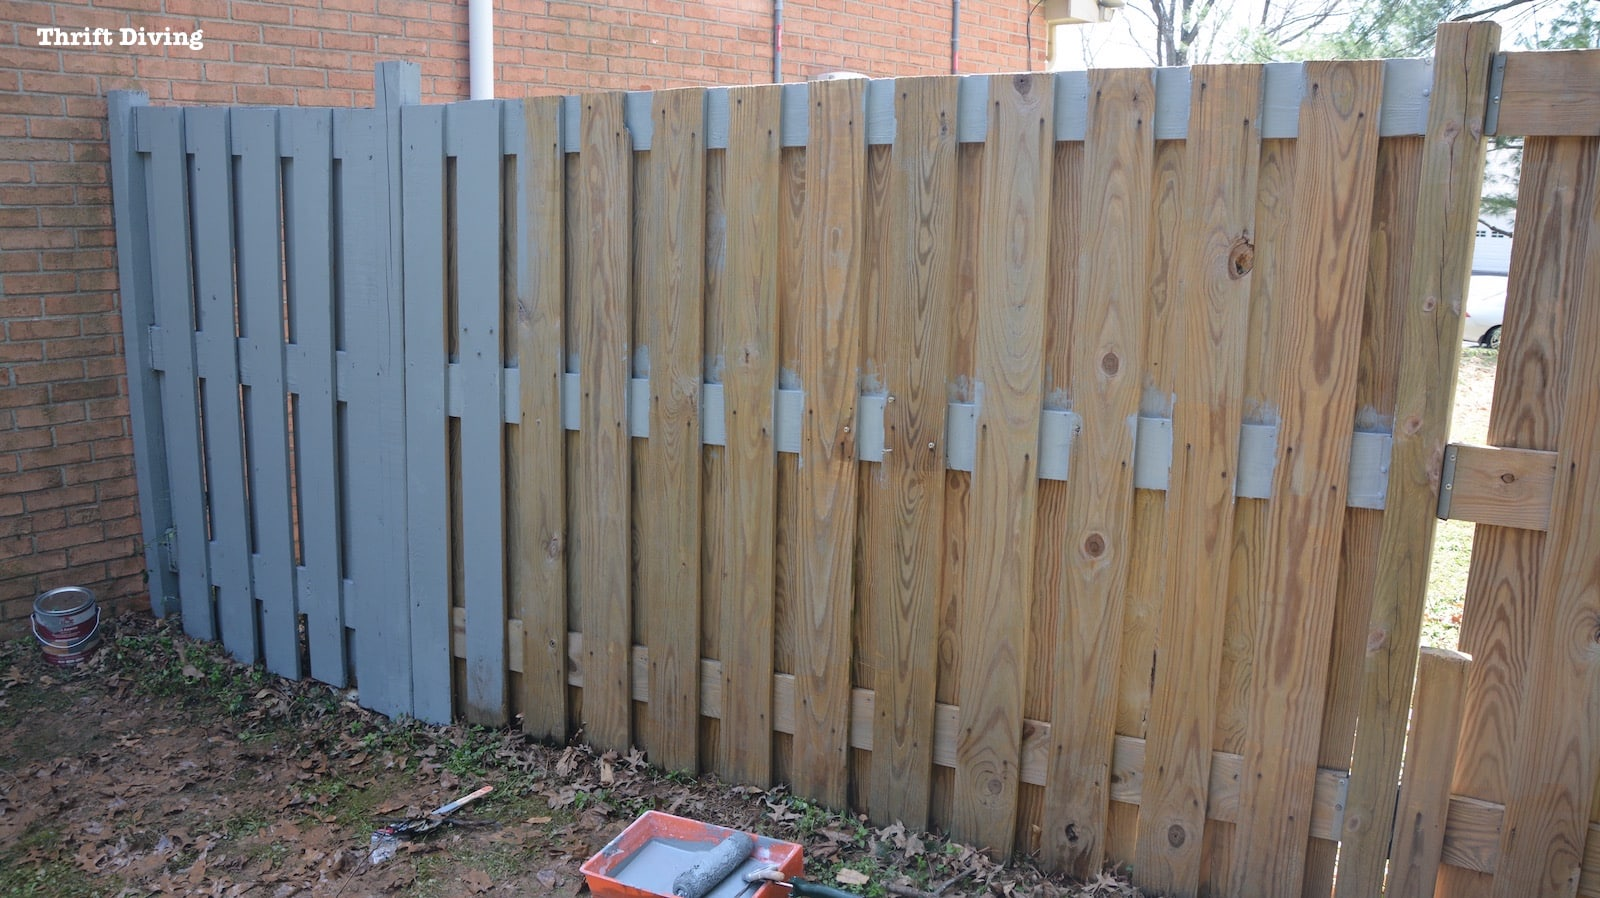 Preferential Paint A Fence How To Make Hanging Garden Fence Cedar Planter Making Progress Garden Fence Hanging Baskets Garden Fence Hanging Planters garden Fence Hanging Garden